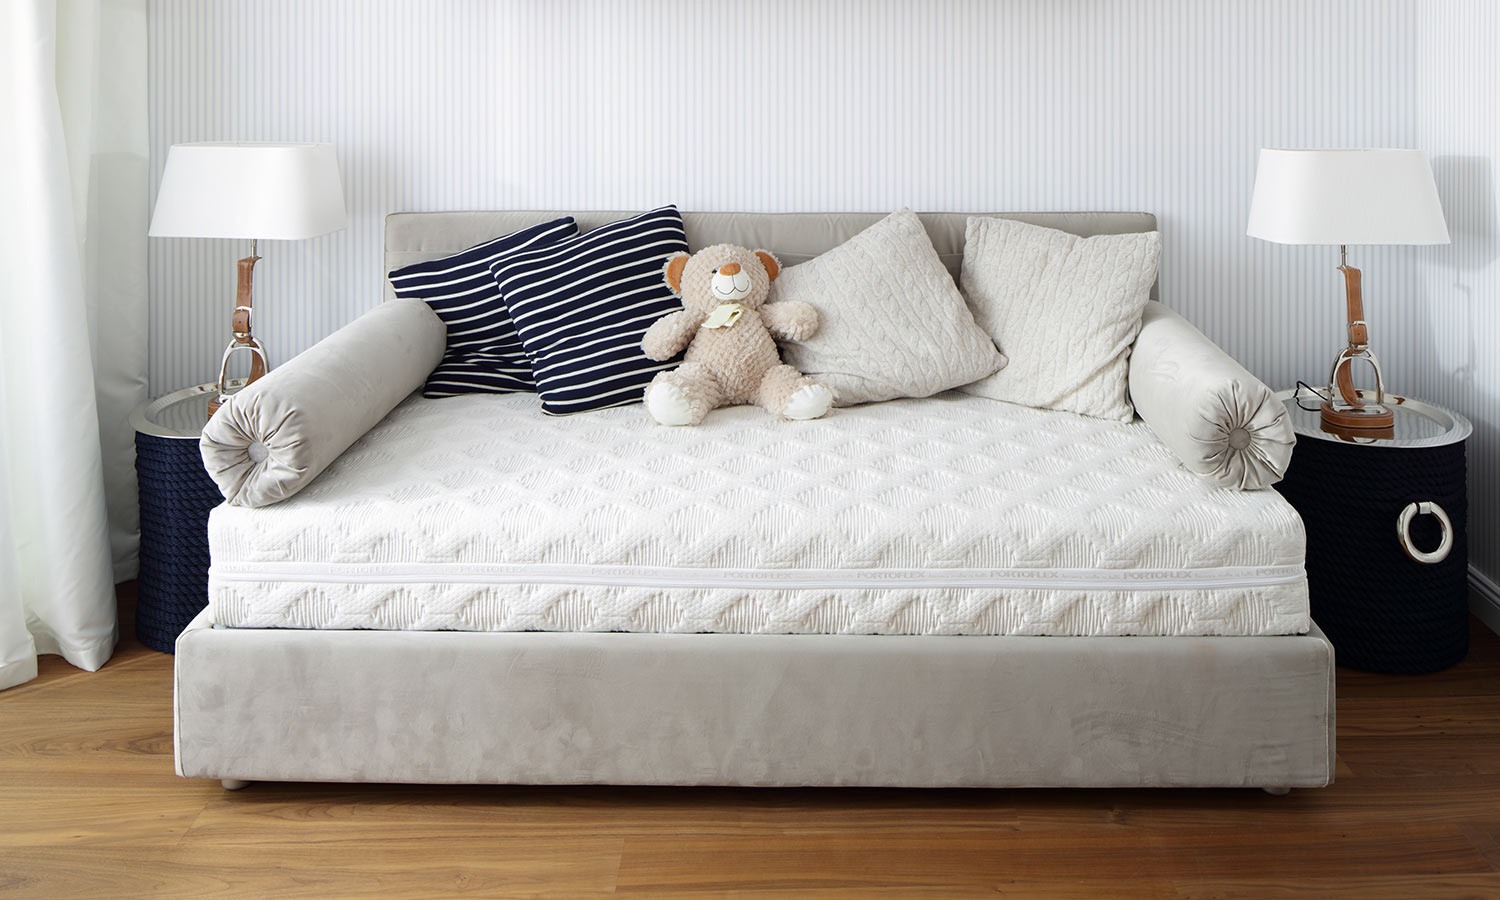 A day bed with pillows and a teddy bear on top